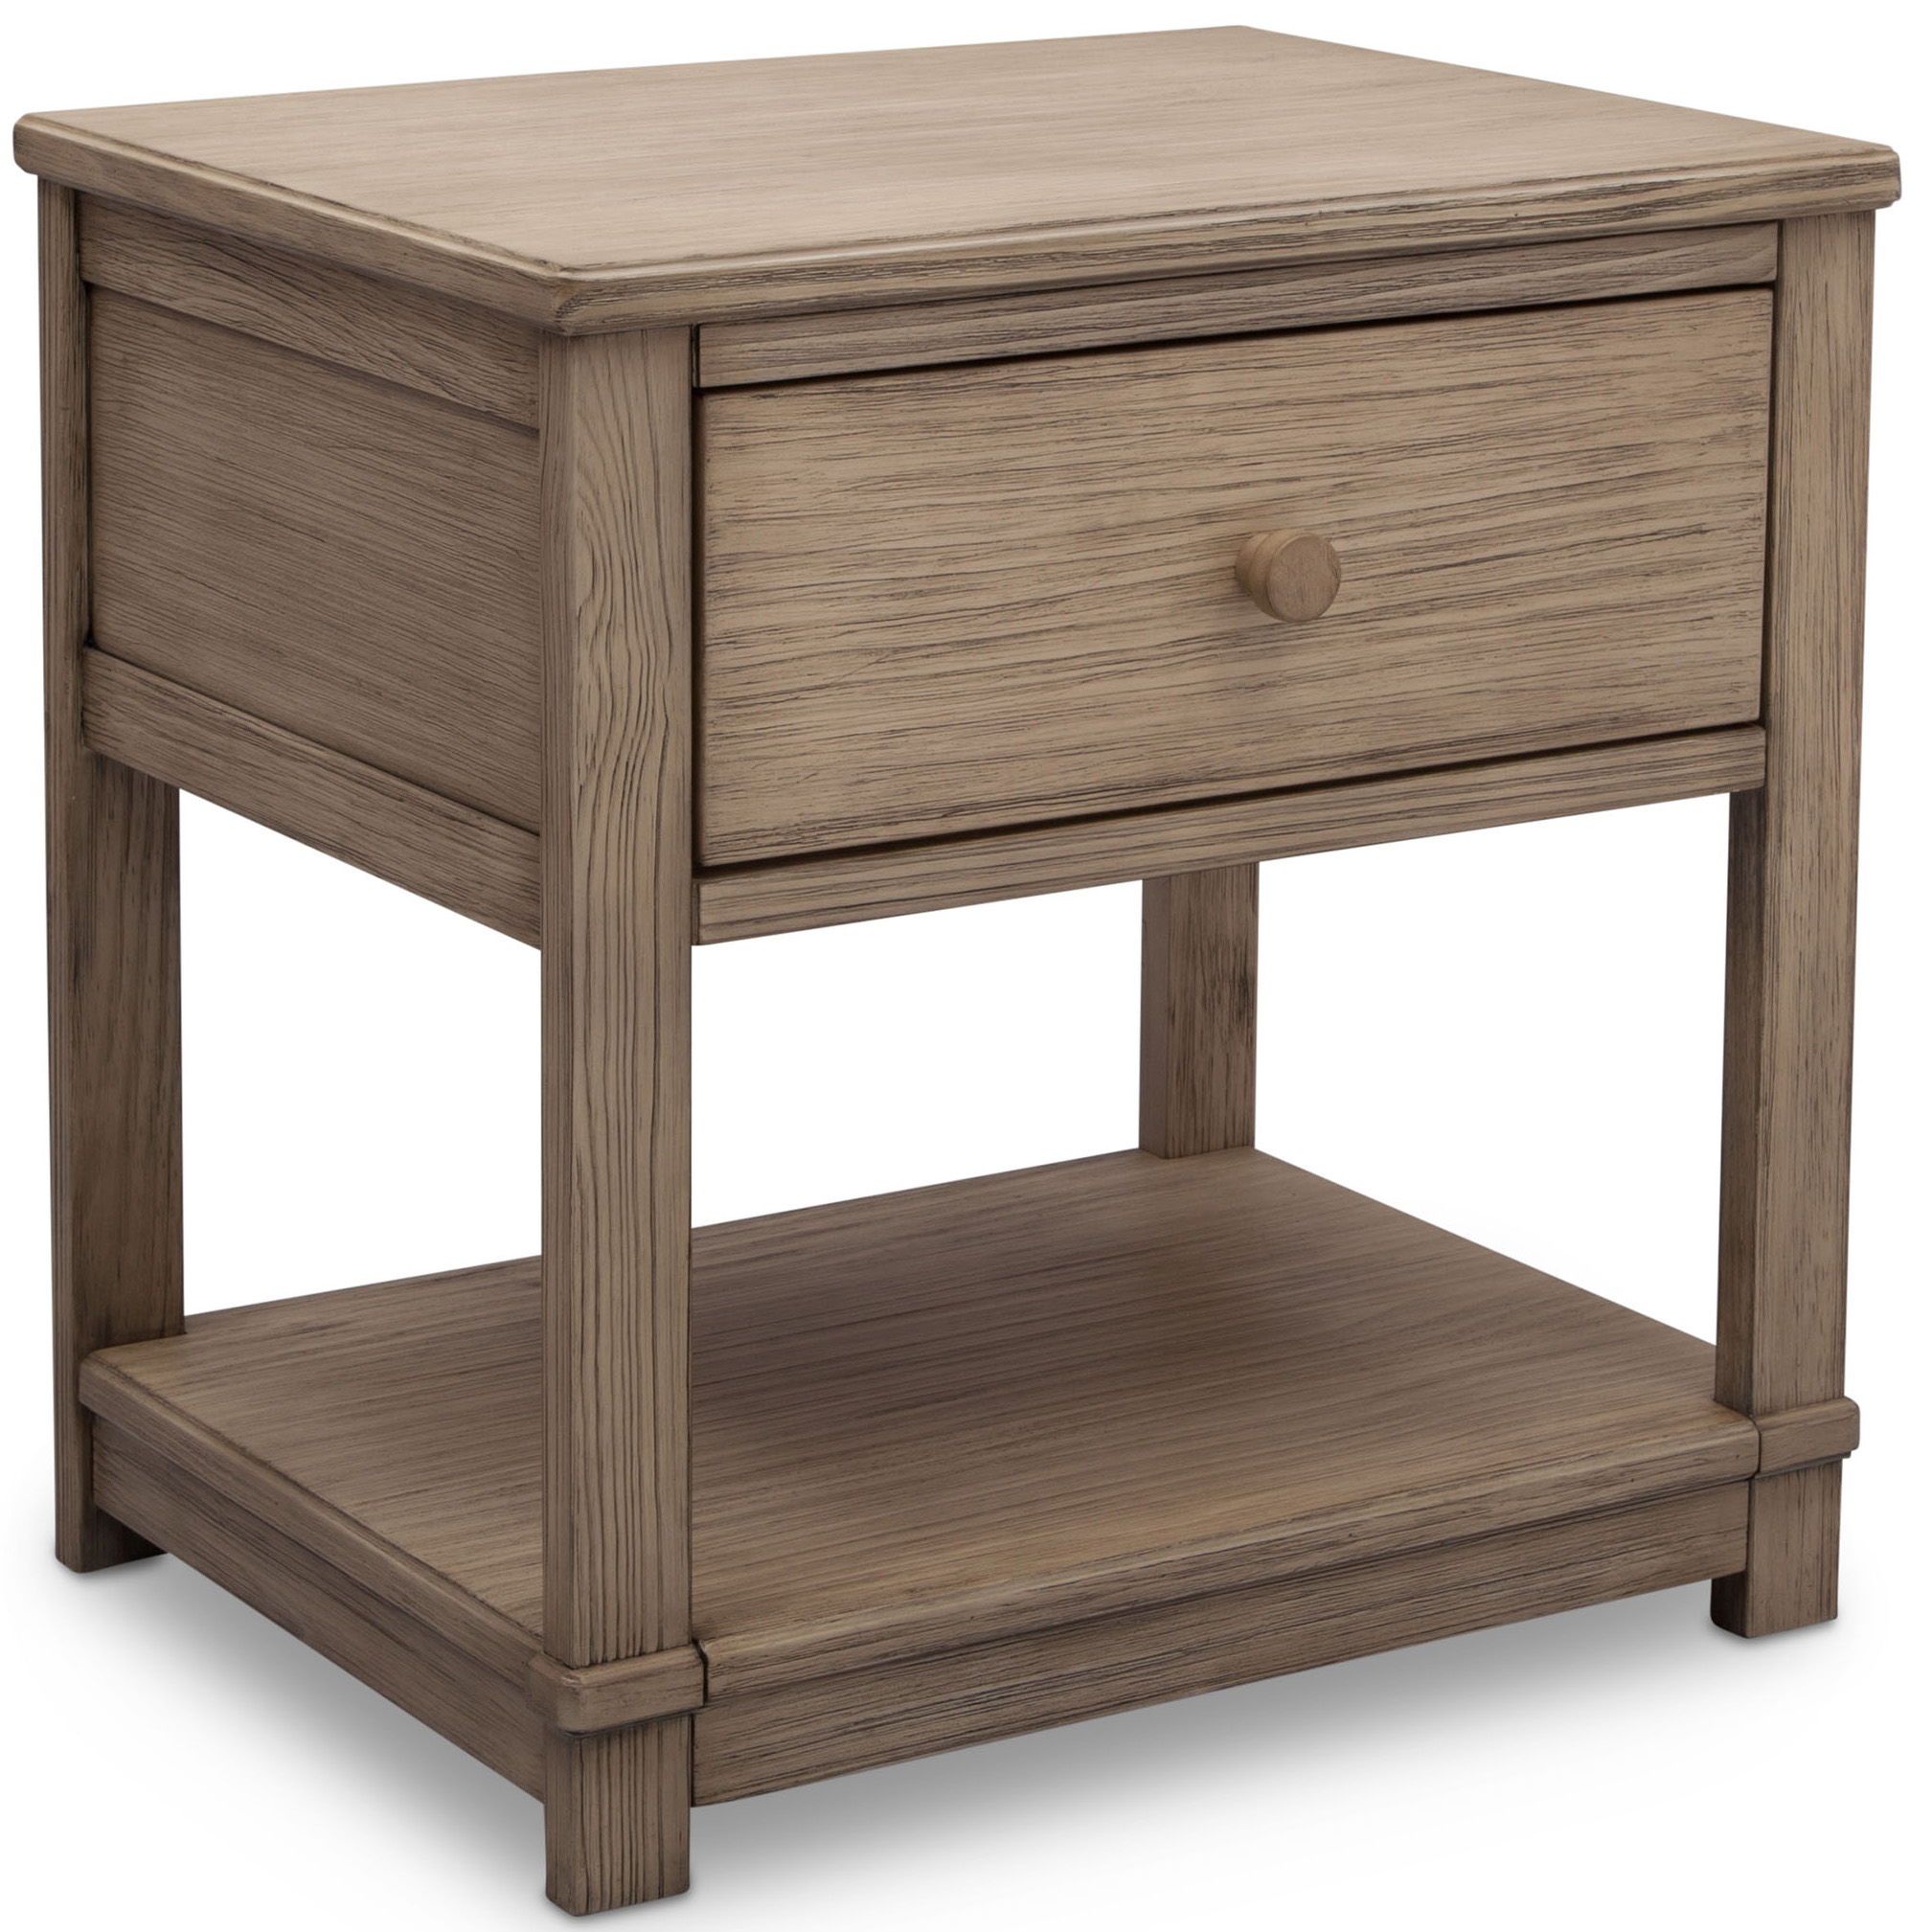 Delta Children Harvest Farmhouse Nightstand with Drawer and Shelf, Rustic Whitewash